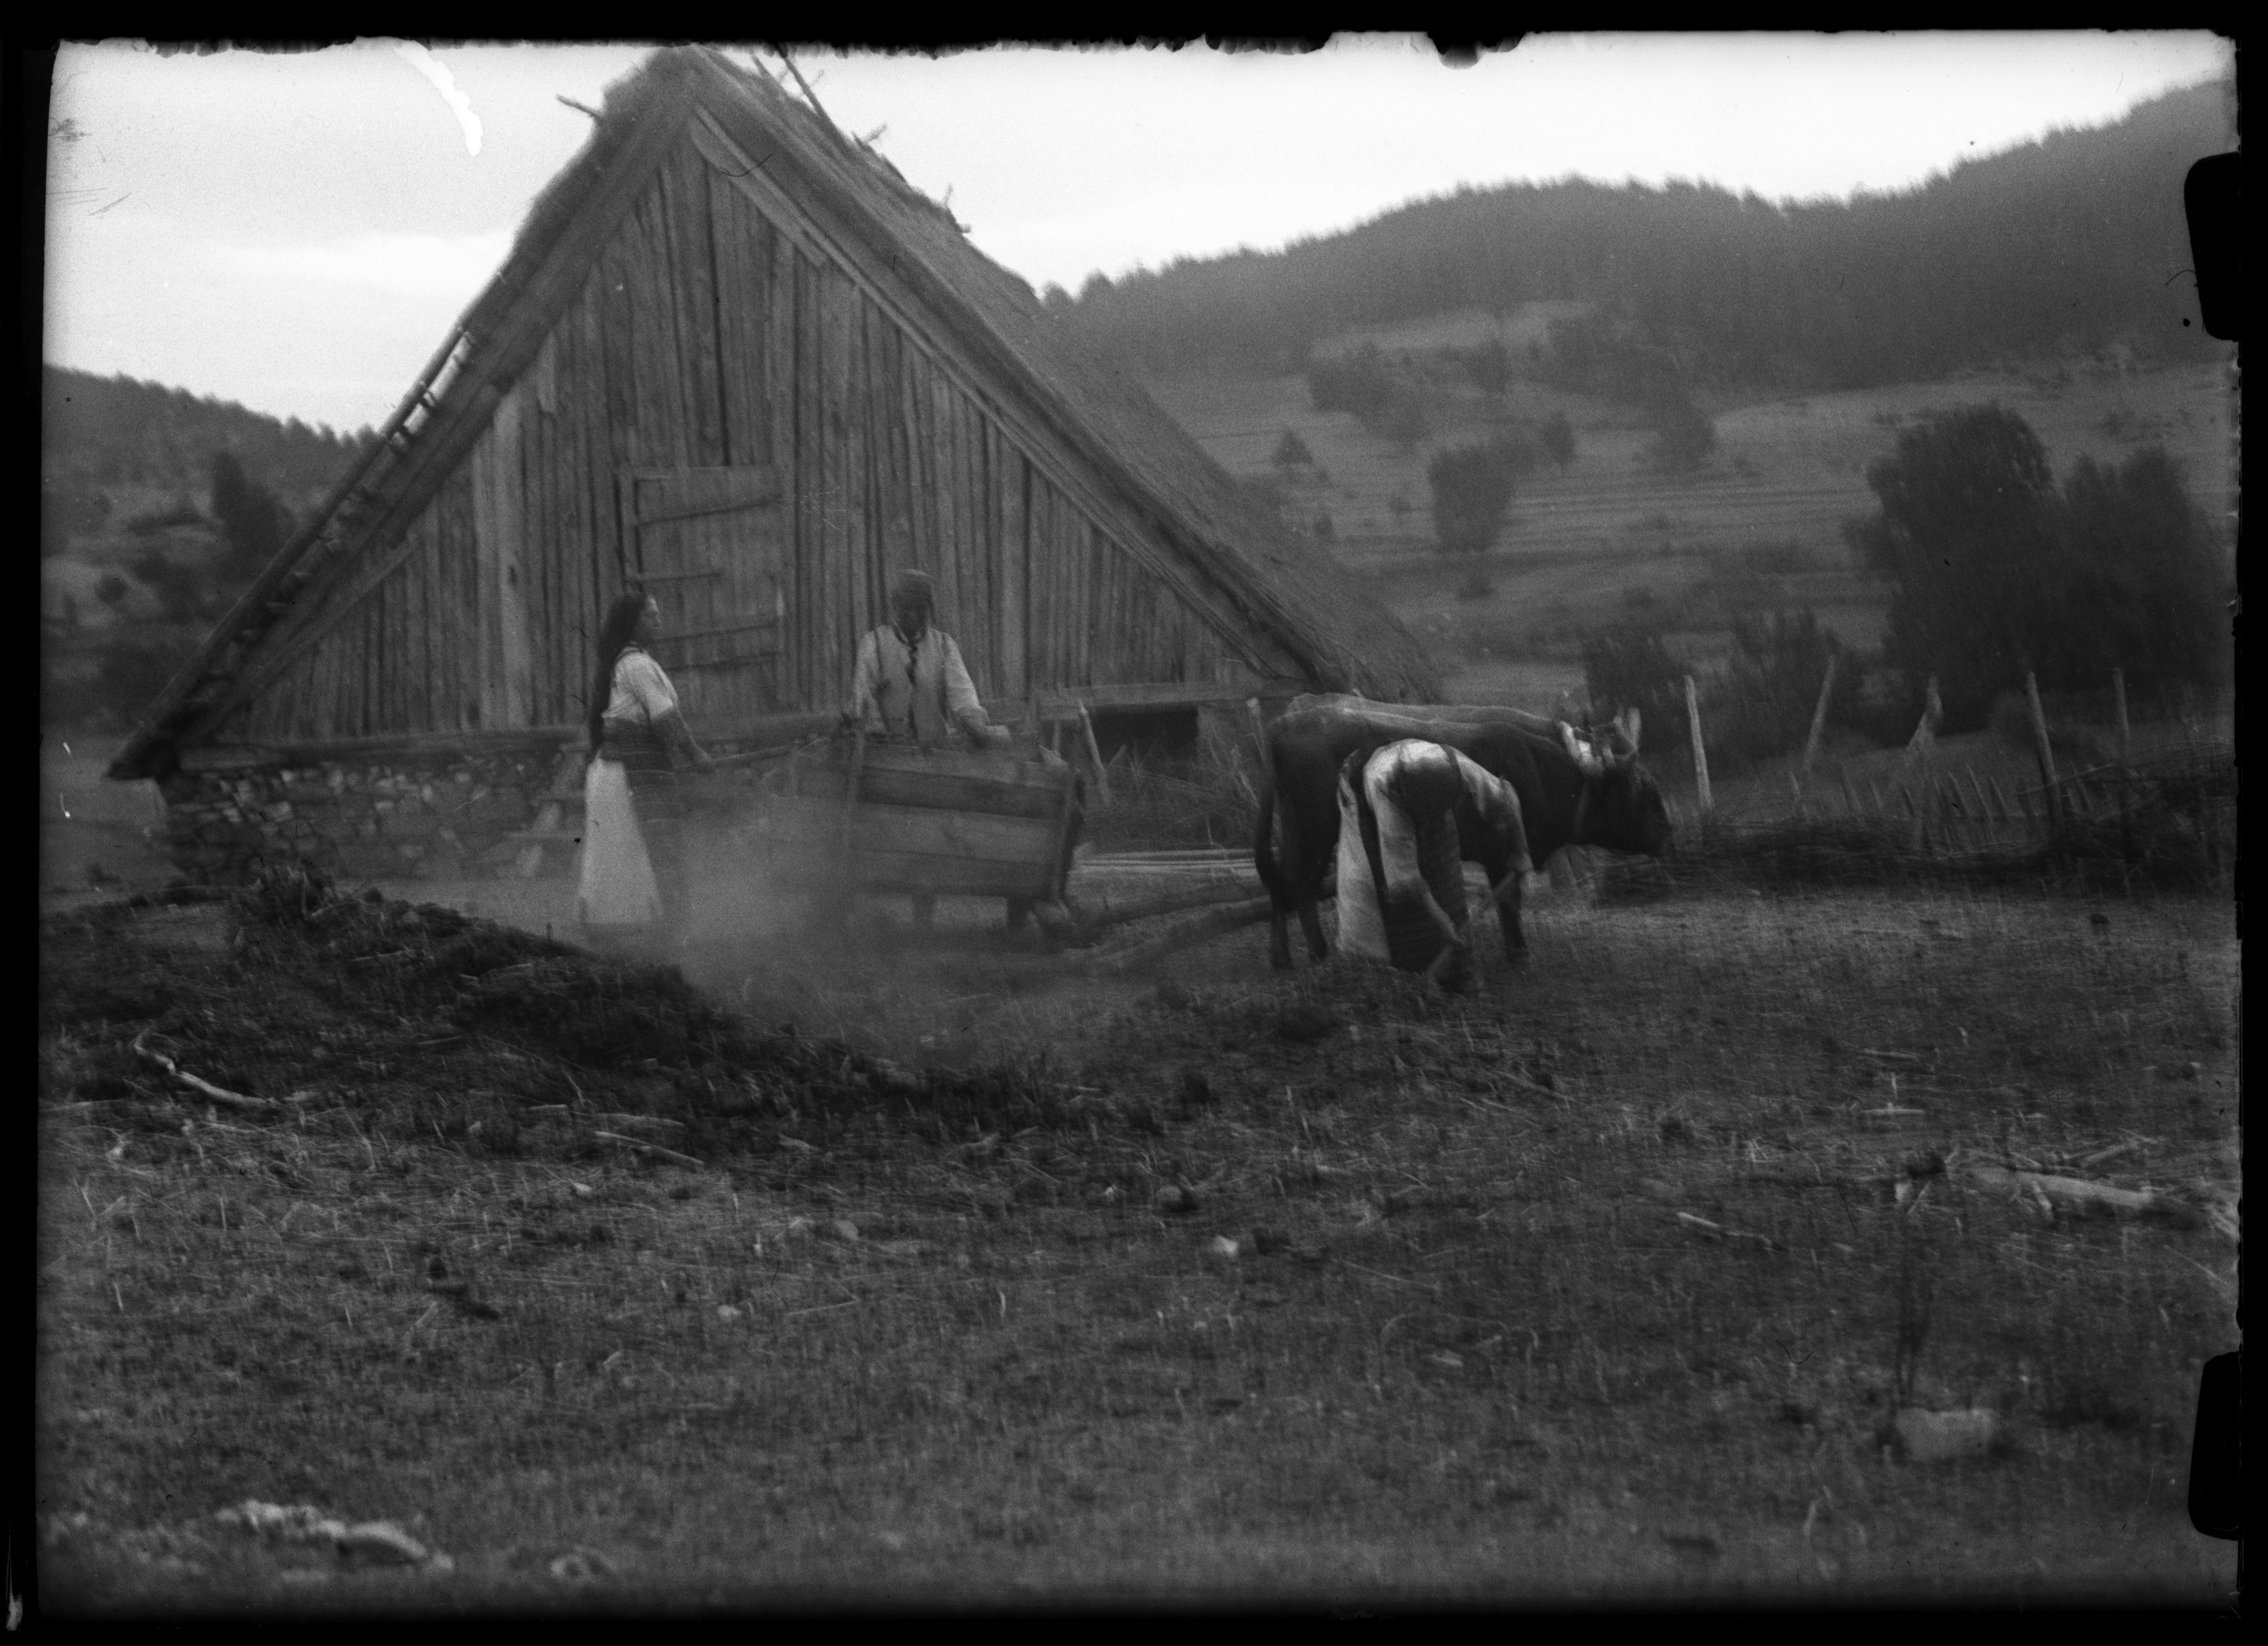 Carting fertilizer in Trebovle, Macedonia, 1932